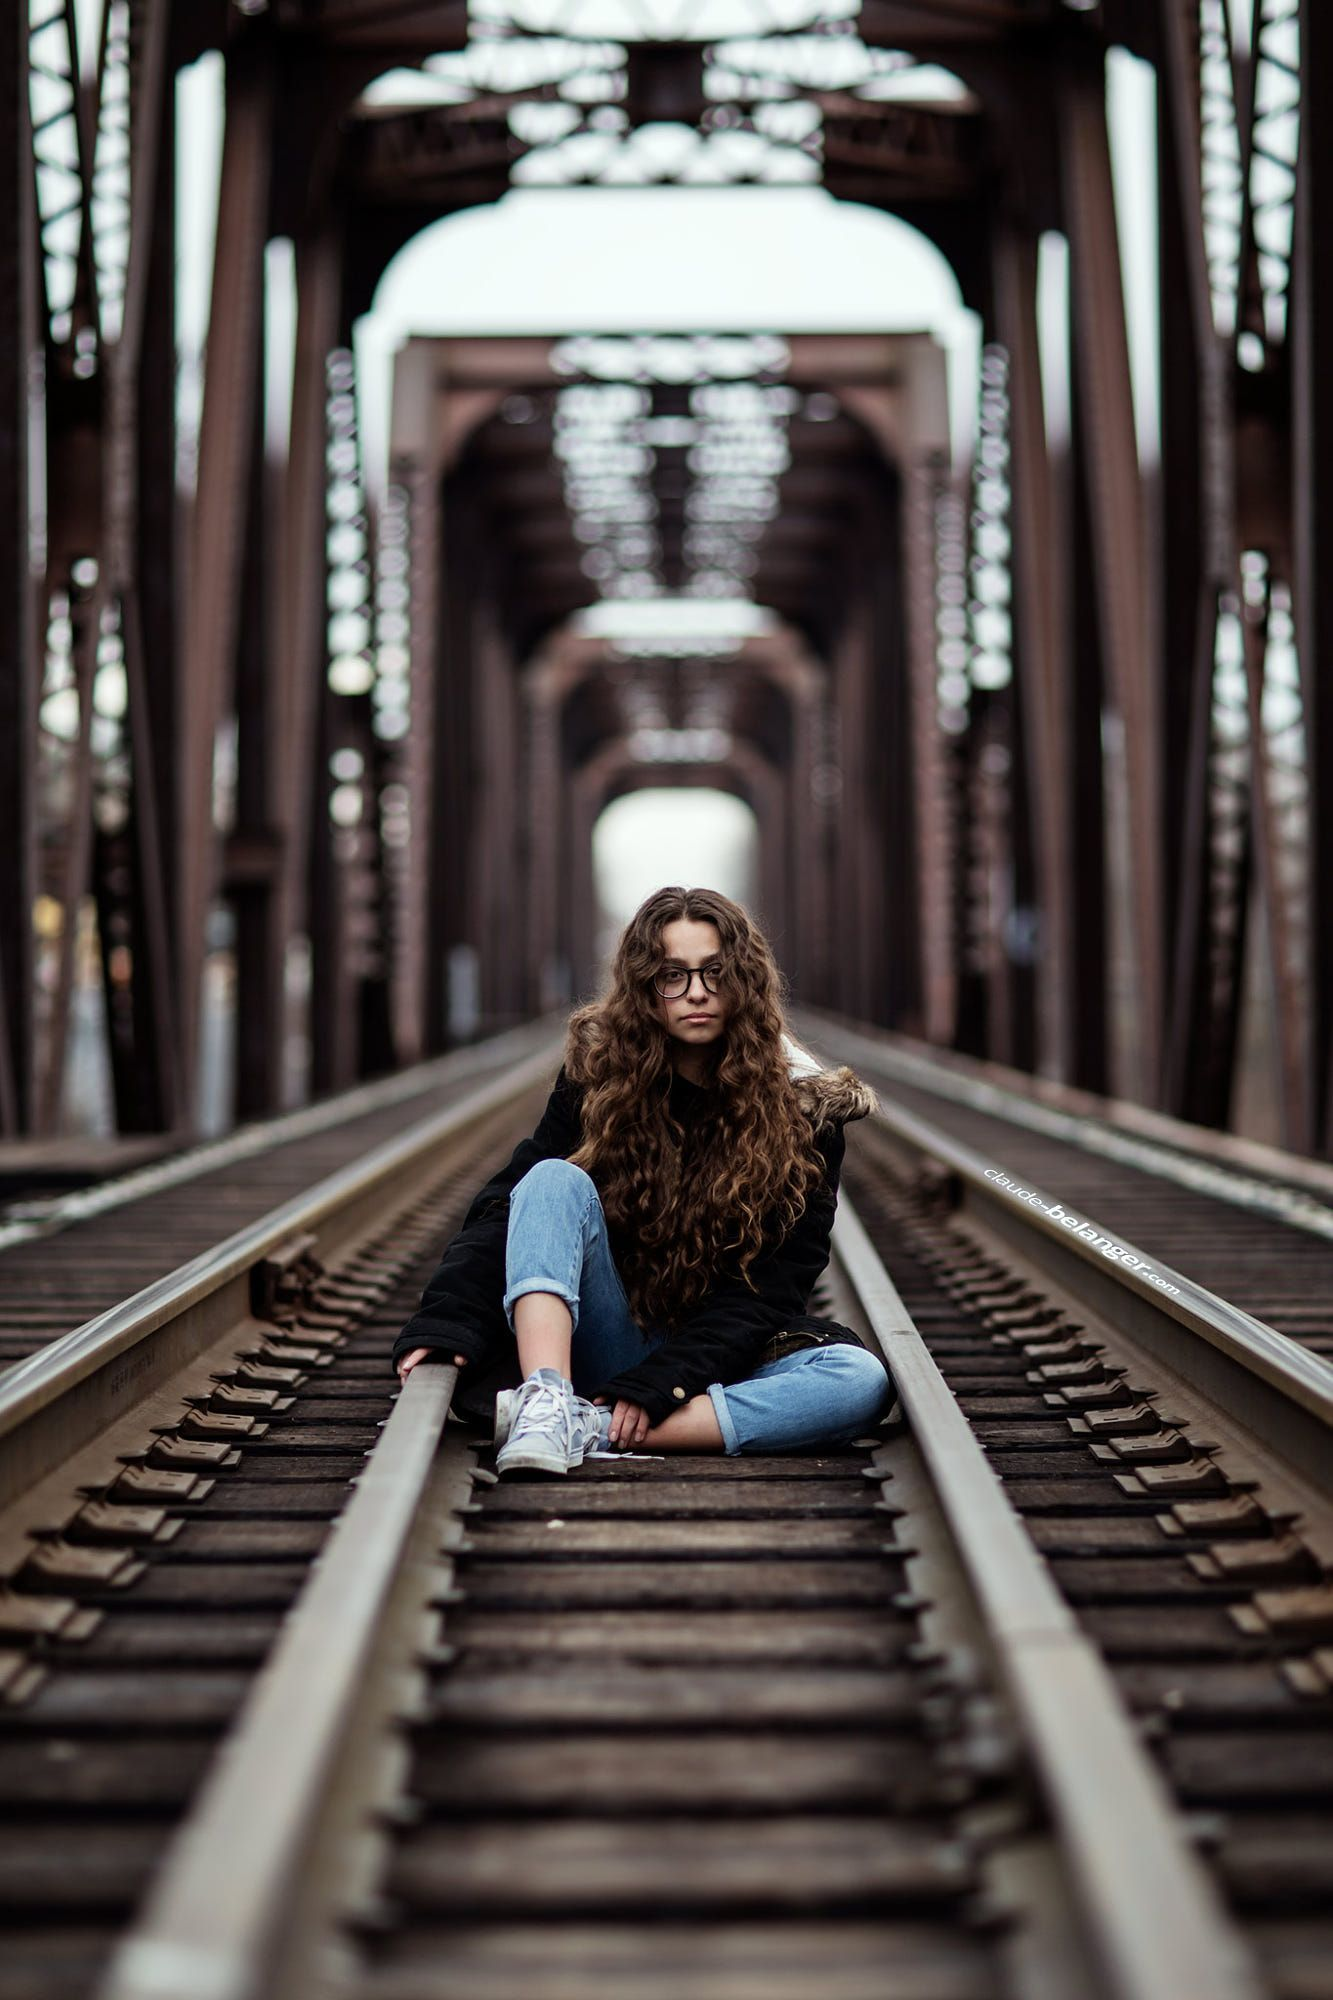 young girl sitting on an abandon train track under a bridge